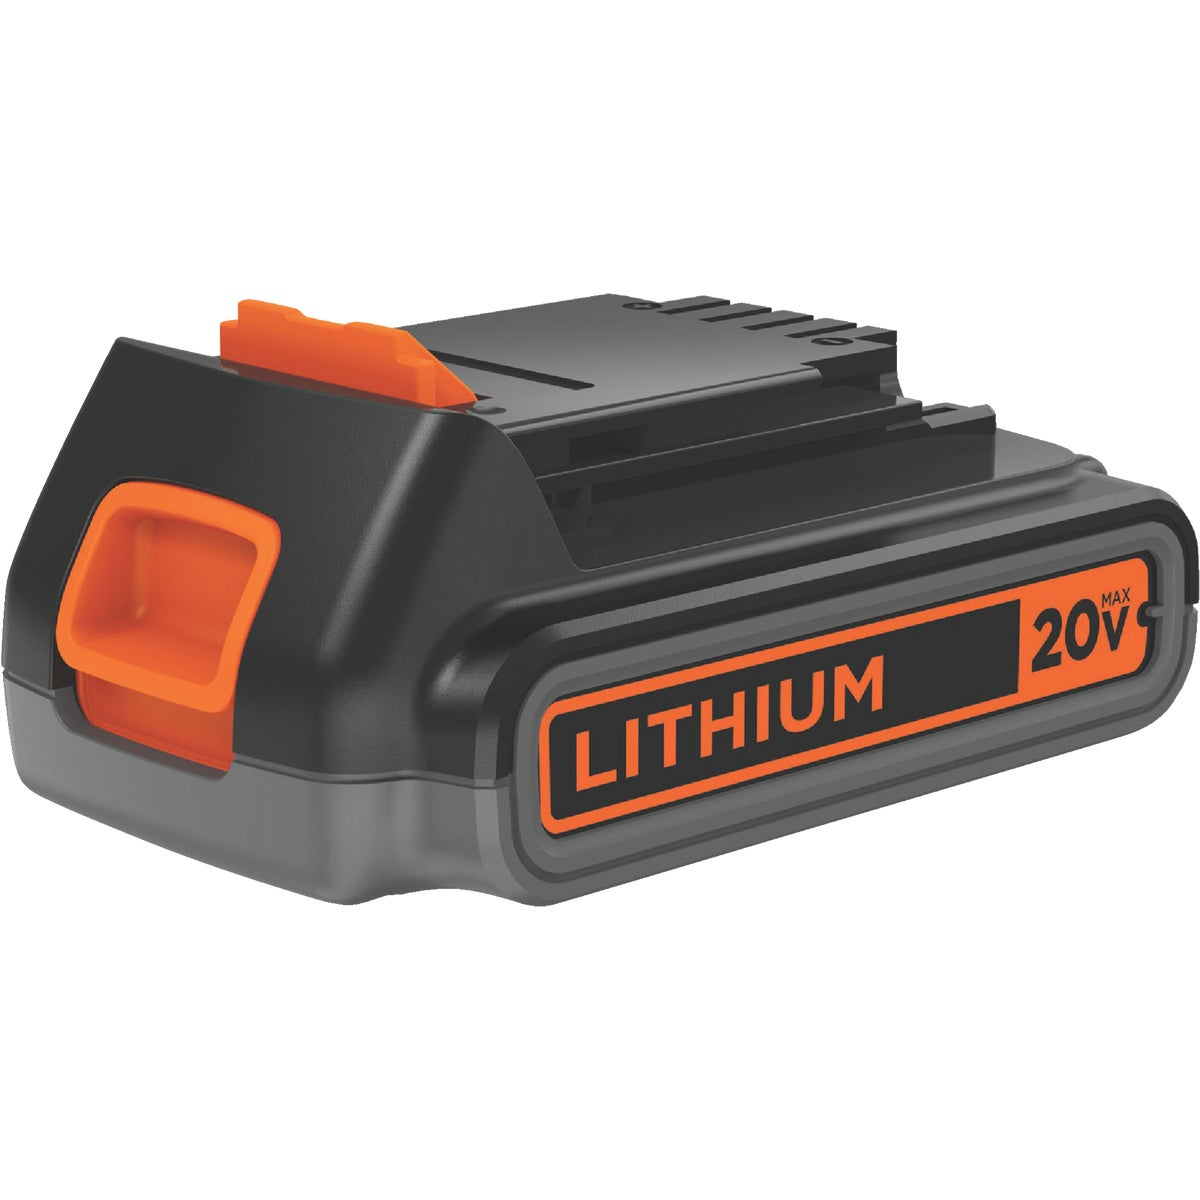 20V LITHIUM ION BATTERY